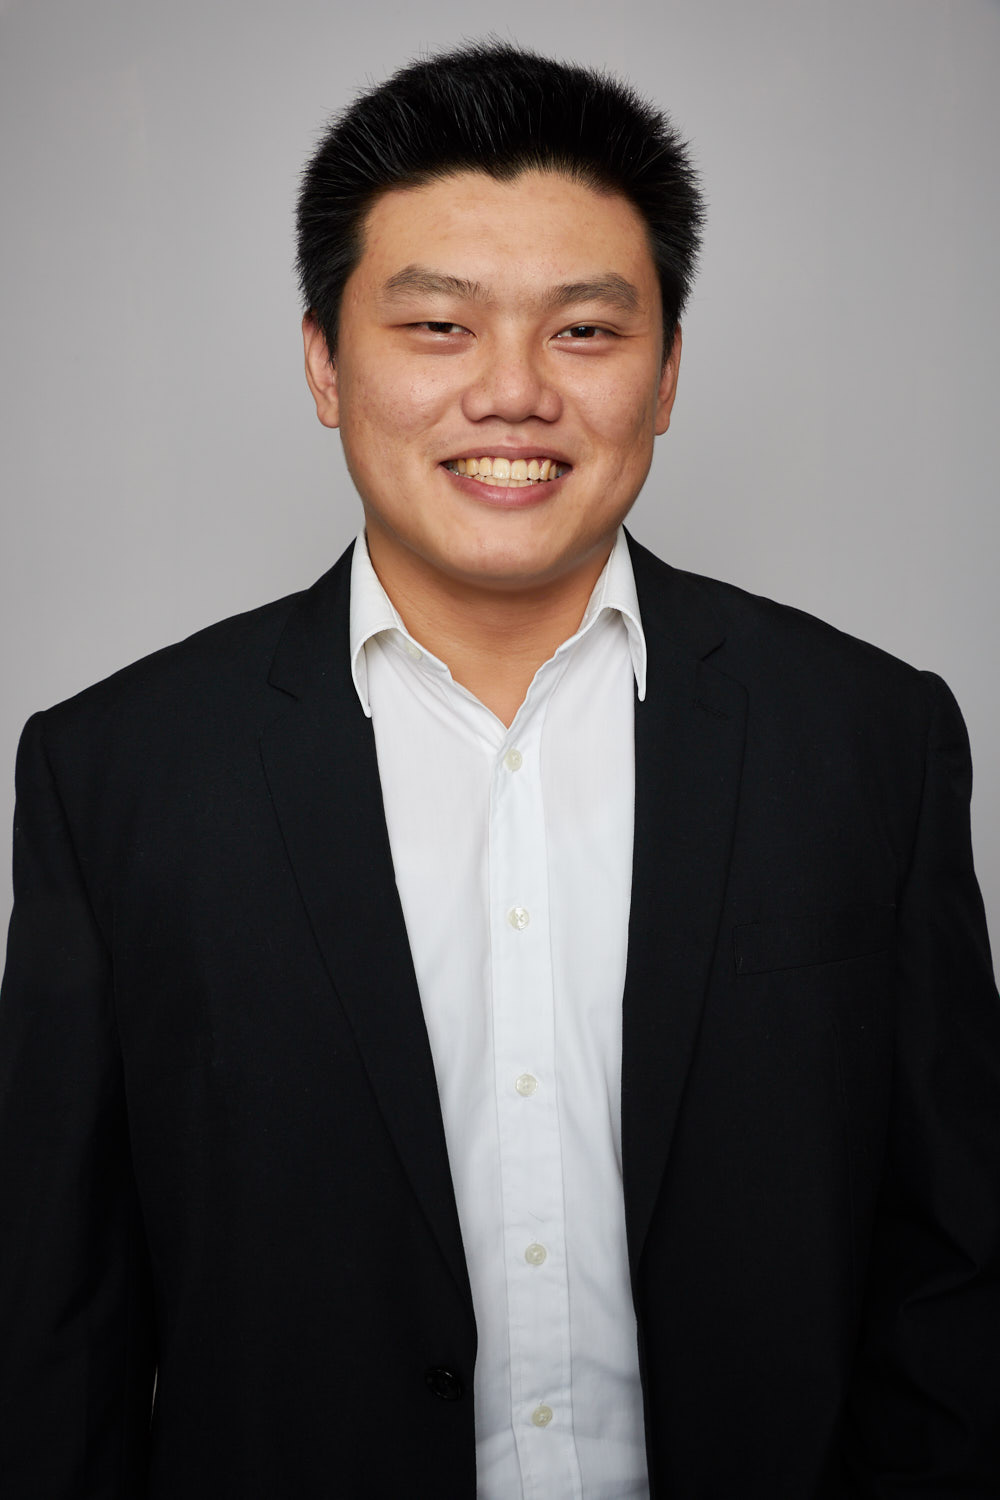 Gordan Leung | Operations Assistant